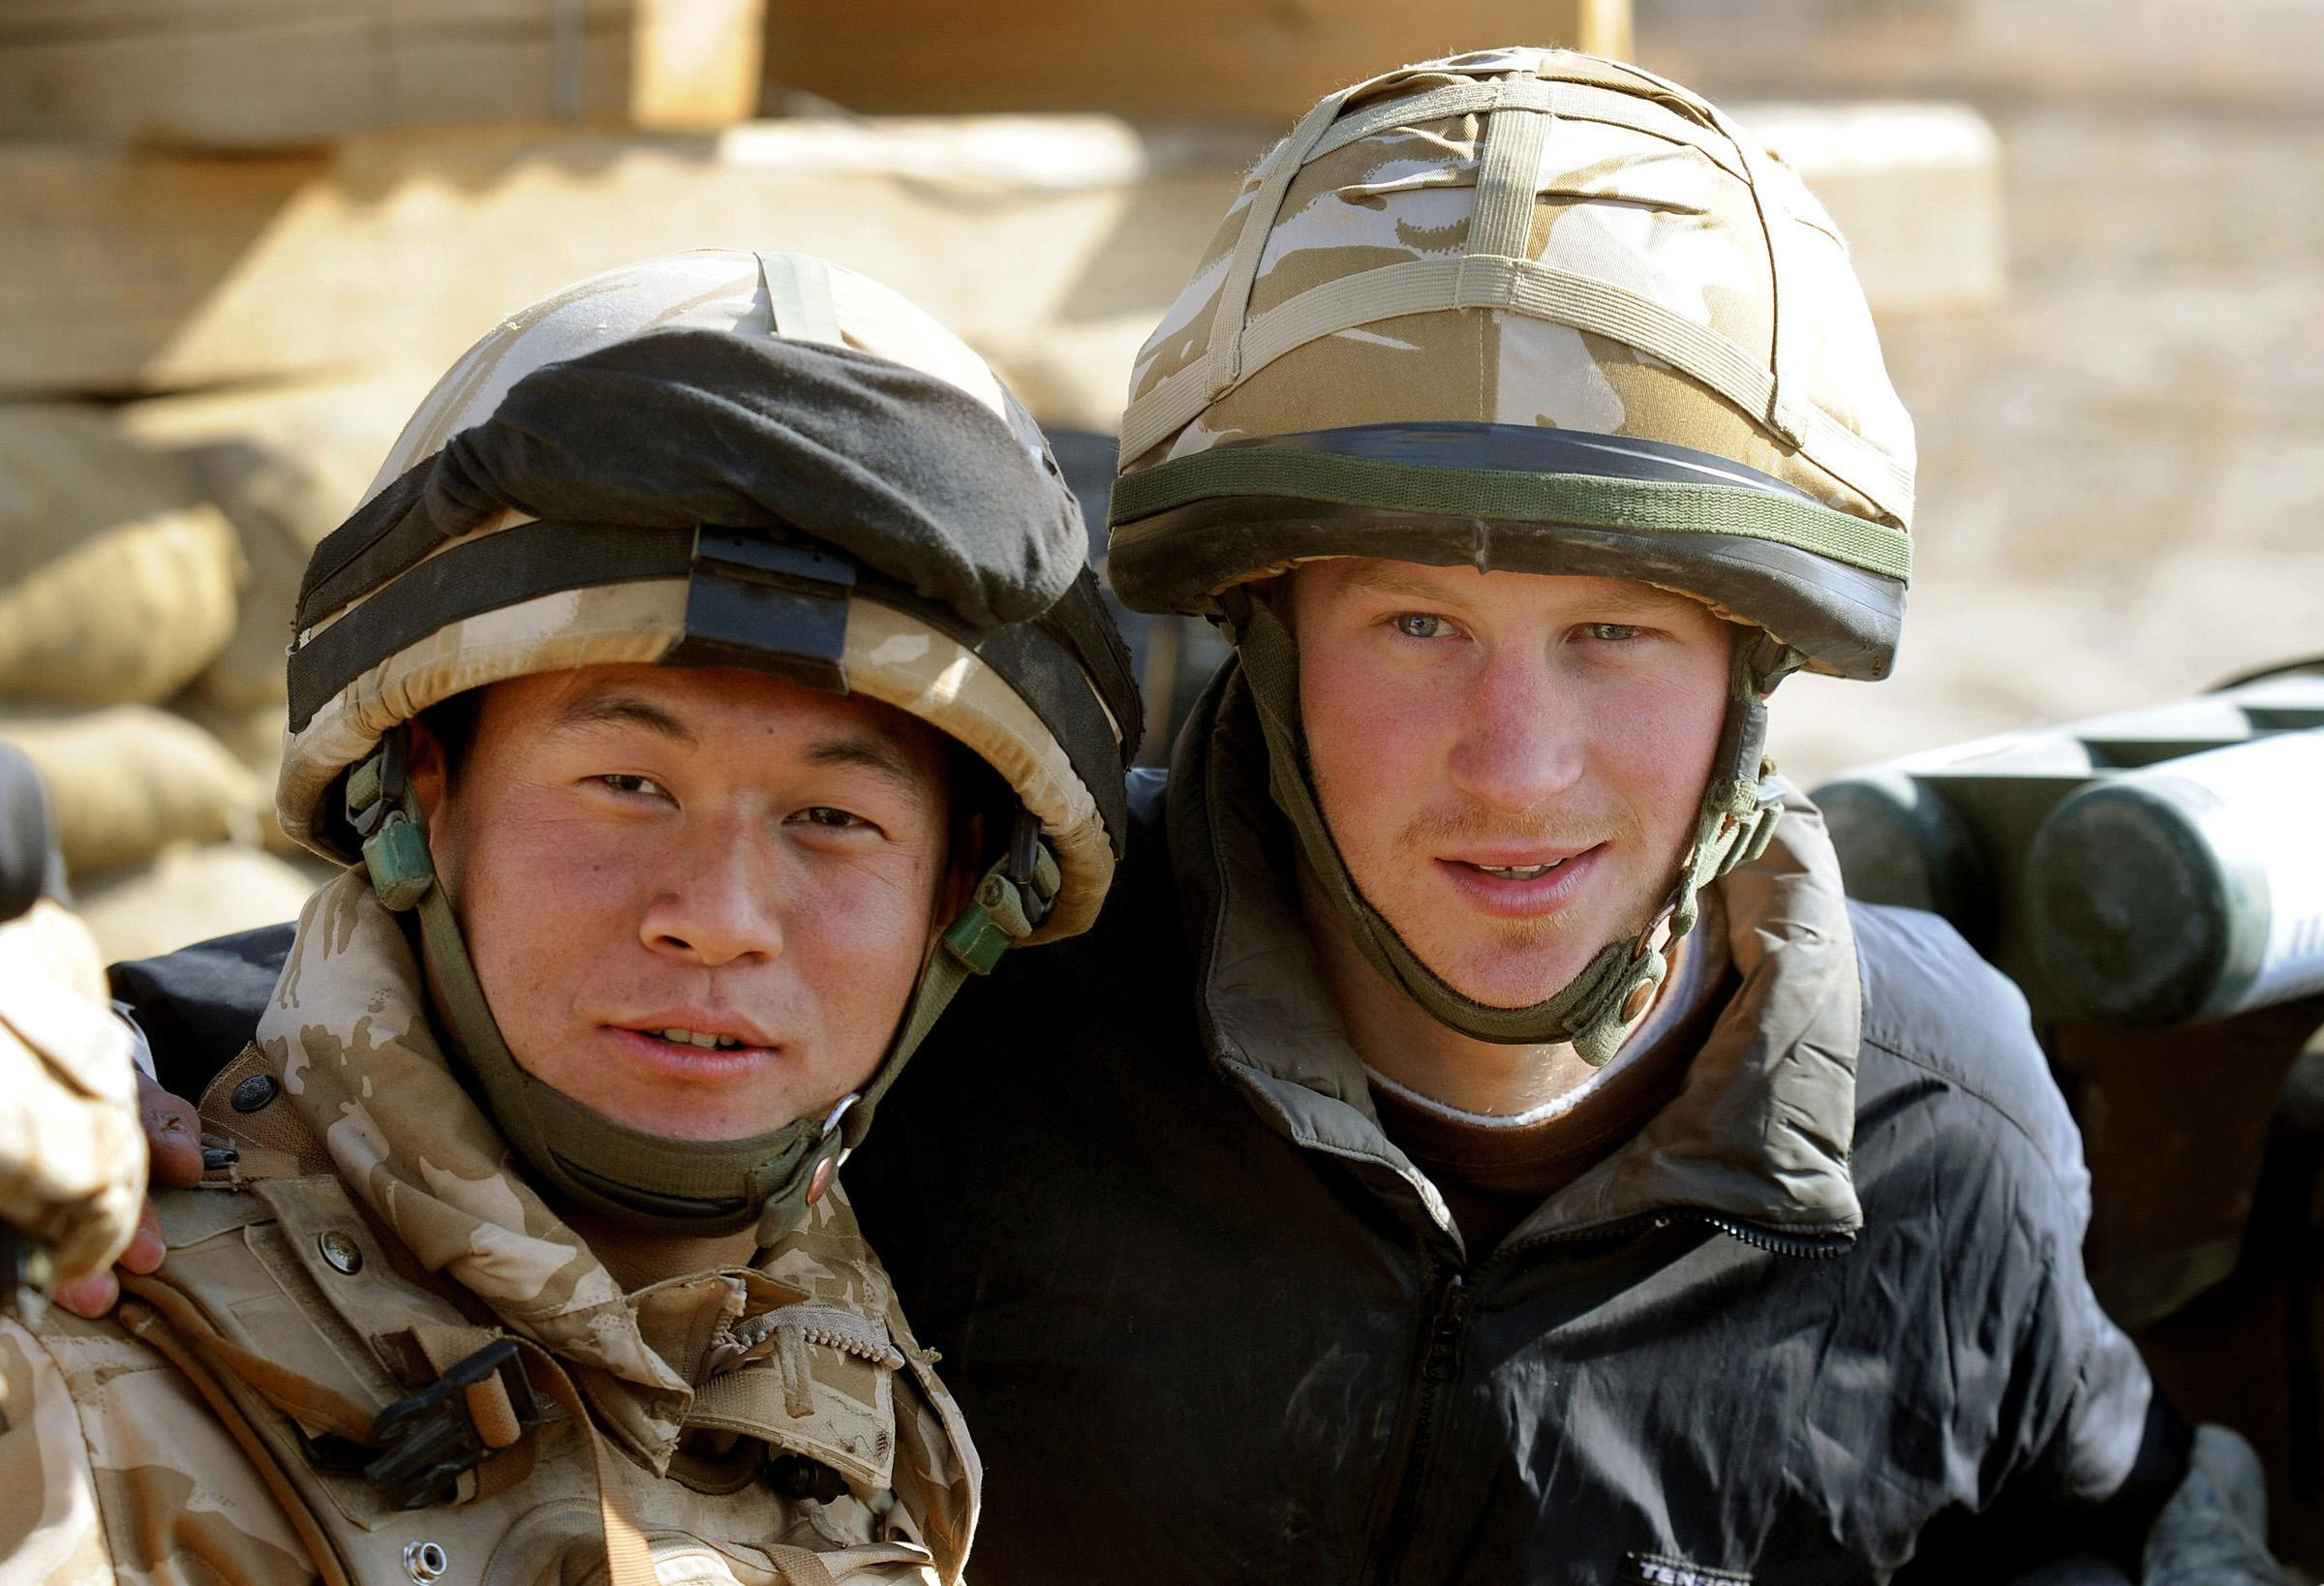 Prince Harry when serving with the the 1st Battalion The Royal Gurkha Rifles in Afghanistan in 2007